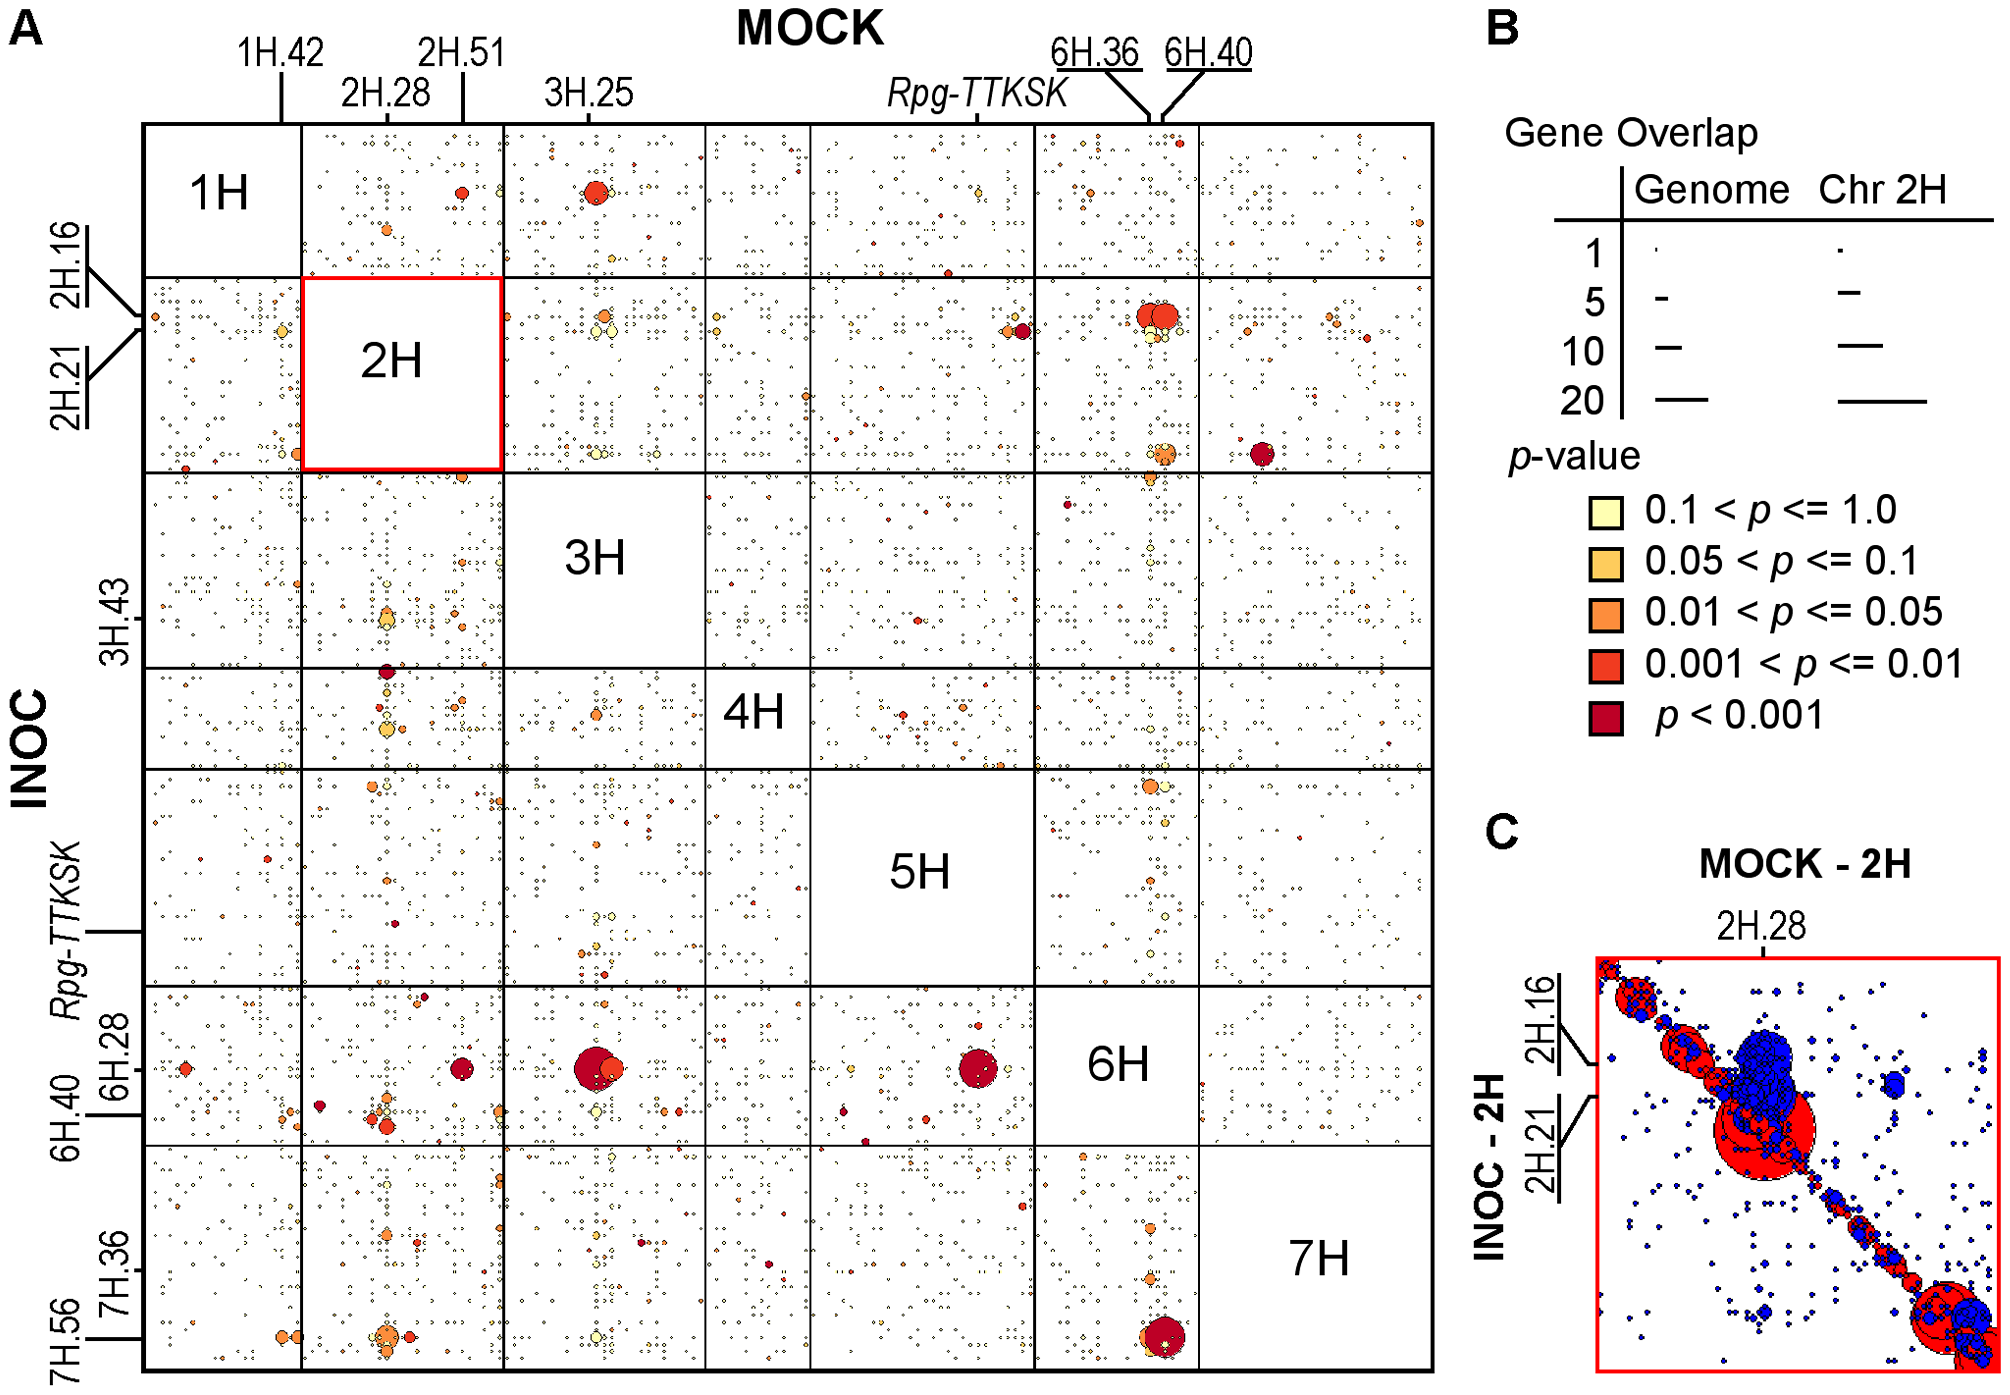 Genes from 2H.28/29, 3H.27, 6H.36/38, and 6H.40 loci are regulated by the 2H.16 <i>trans</i>-eQTL hotspot after challenge by <i>Pgt</i> race TTKSK.